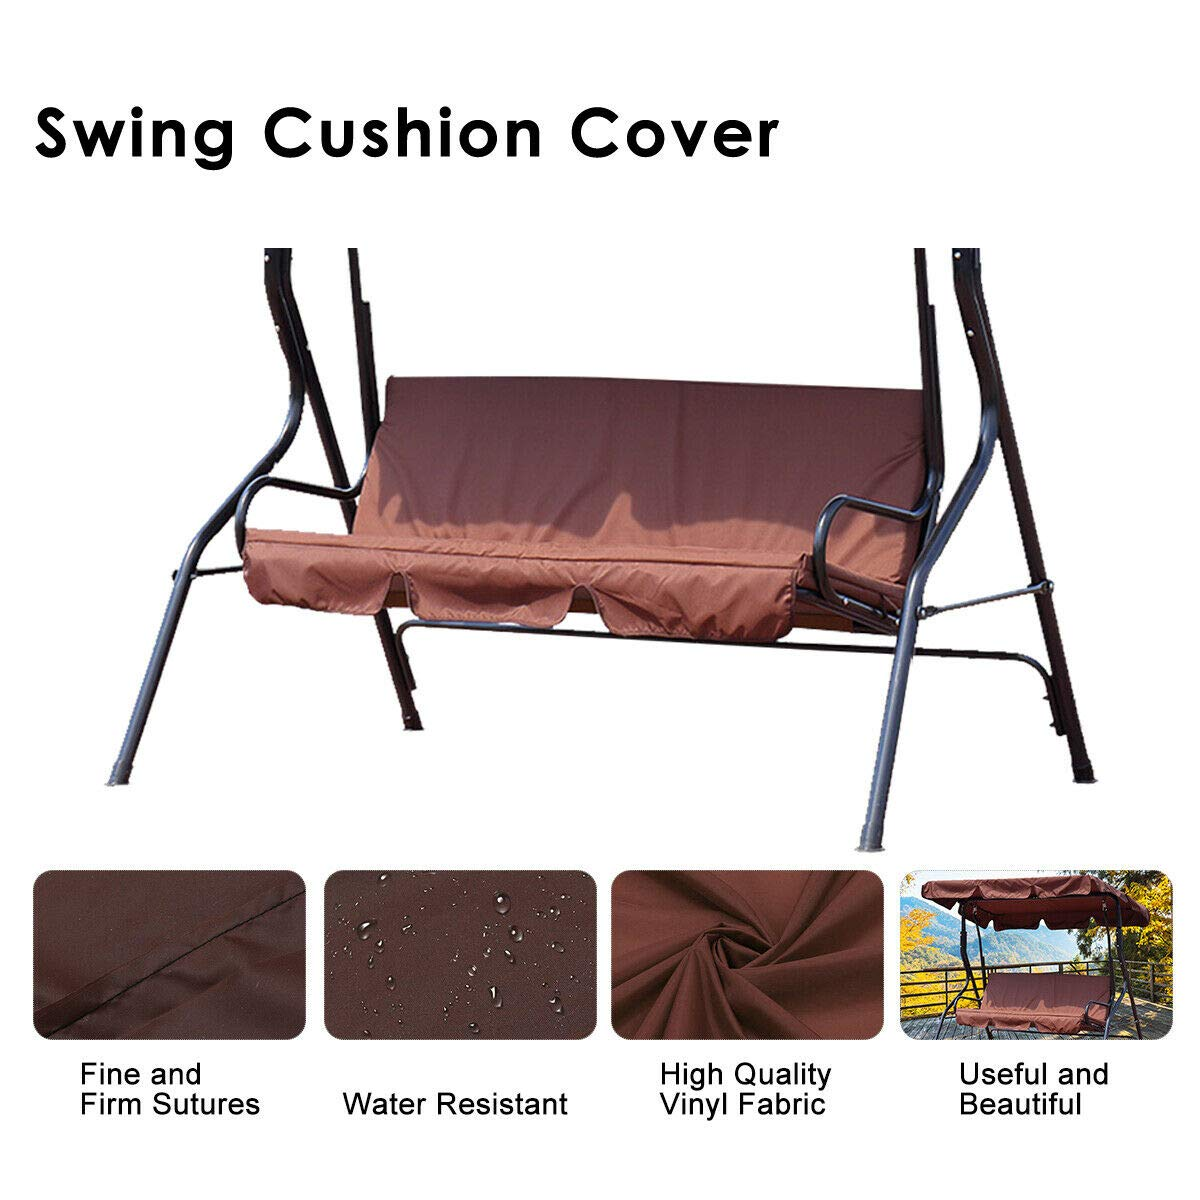 dDanke Patio Swing Cushion Cover Swing Seat Cover Replacement for 3 Seat Swing Chair Dustproof Protection 150X50X10CM, Cover Only (Brown) by dDanke